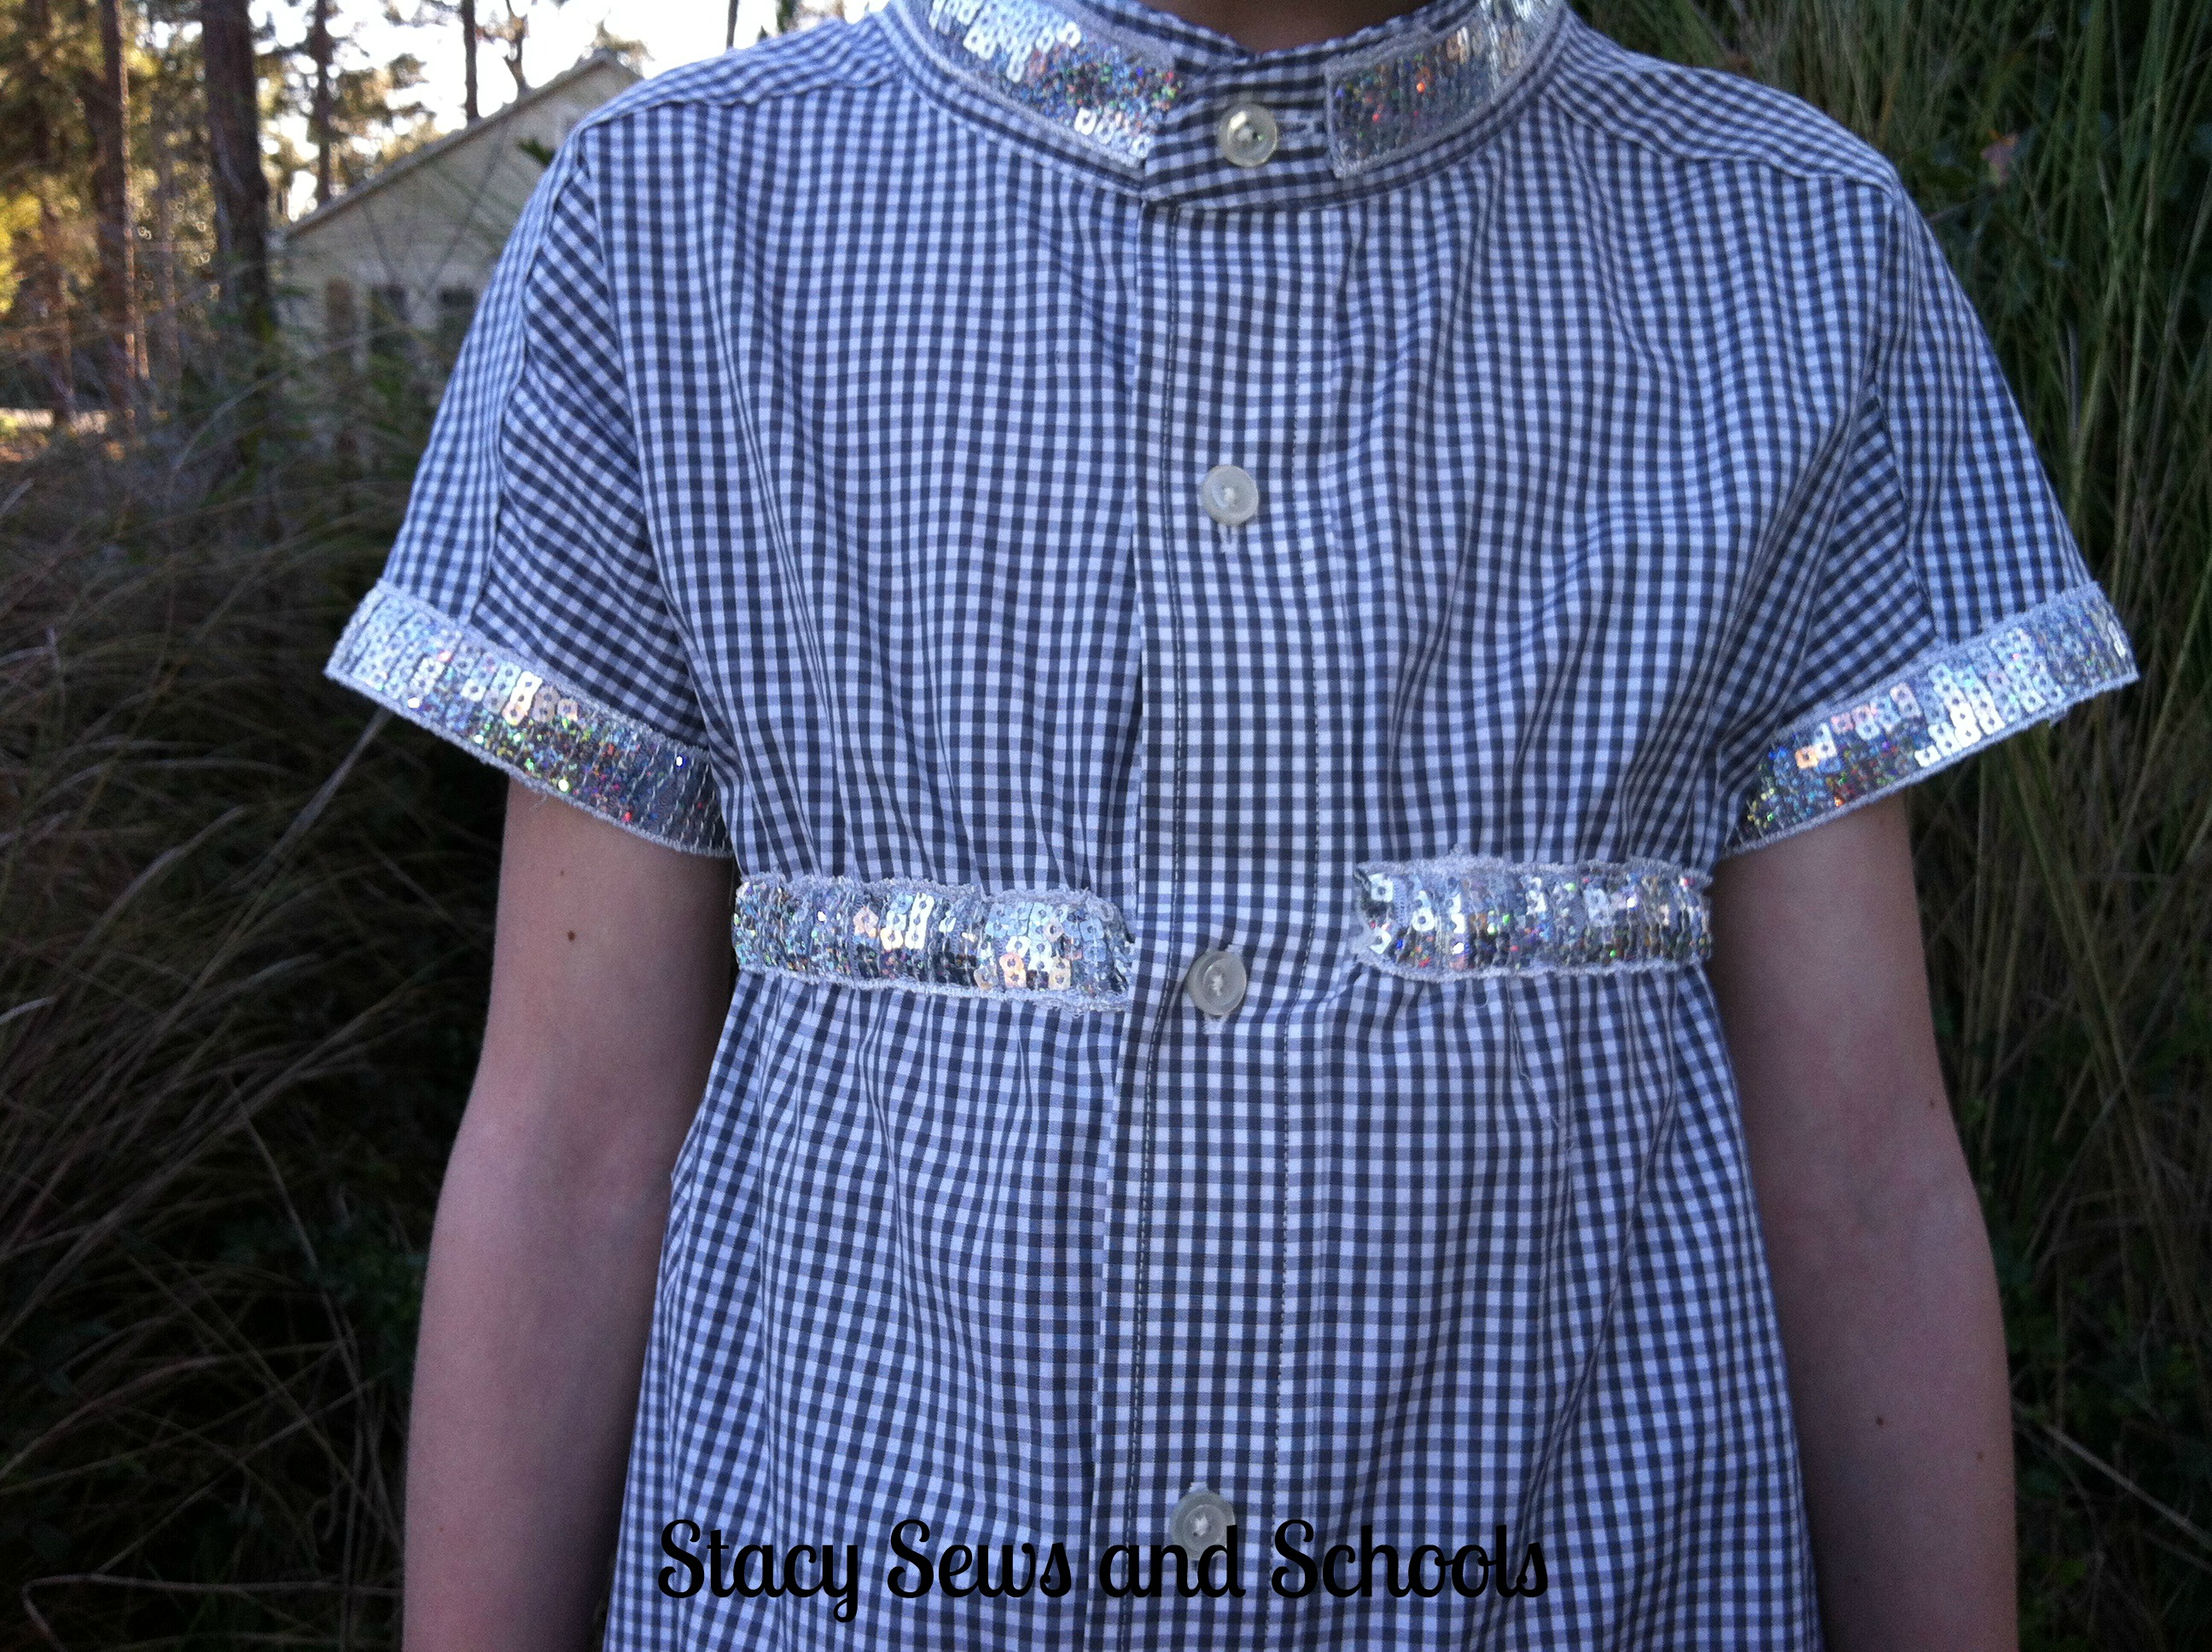 mens shirt refashion Stacy Sews and Schools